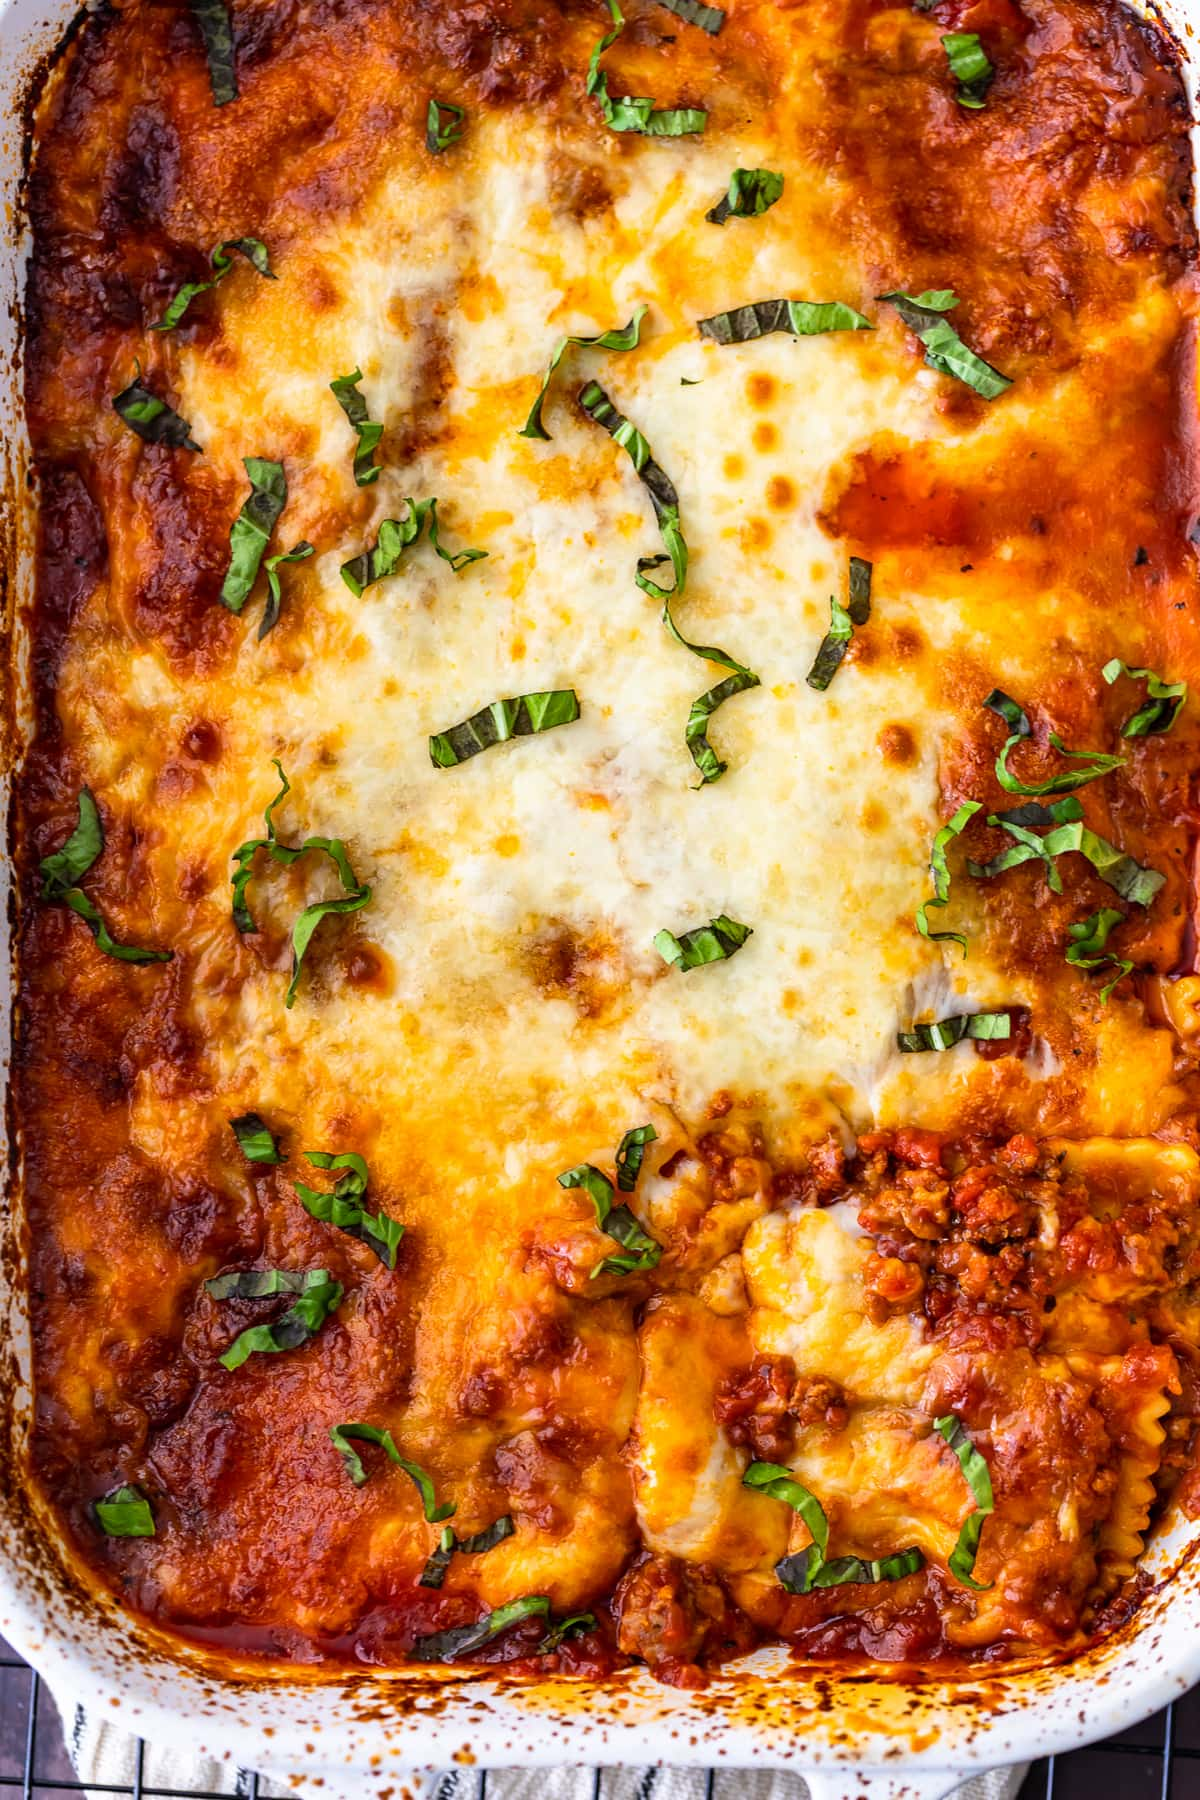 ravioli lasagna topped with cheese